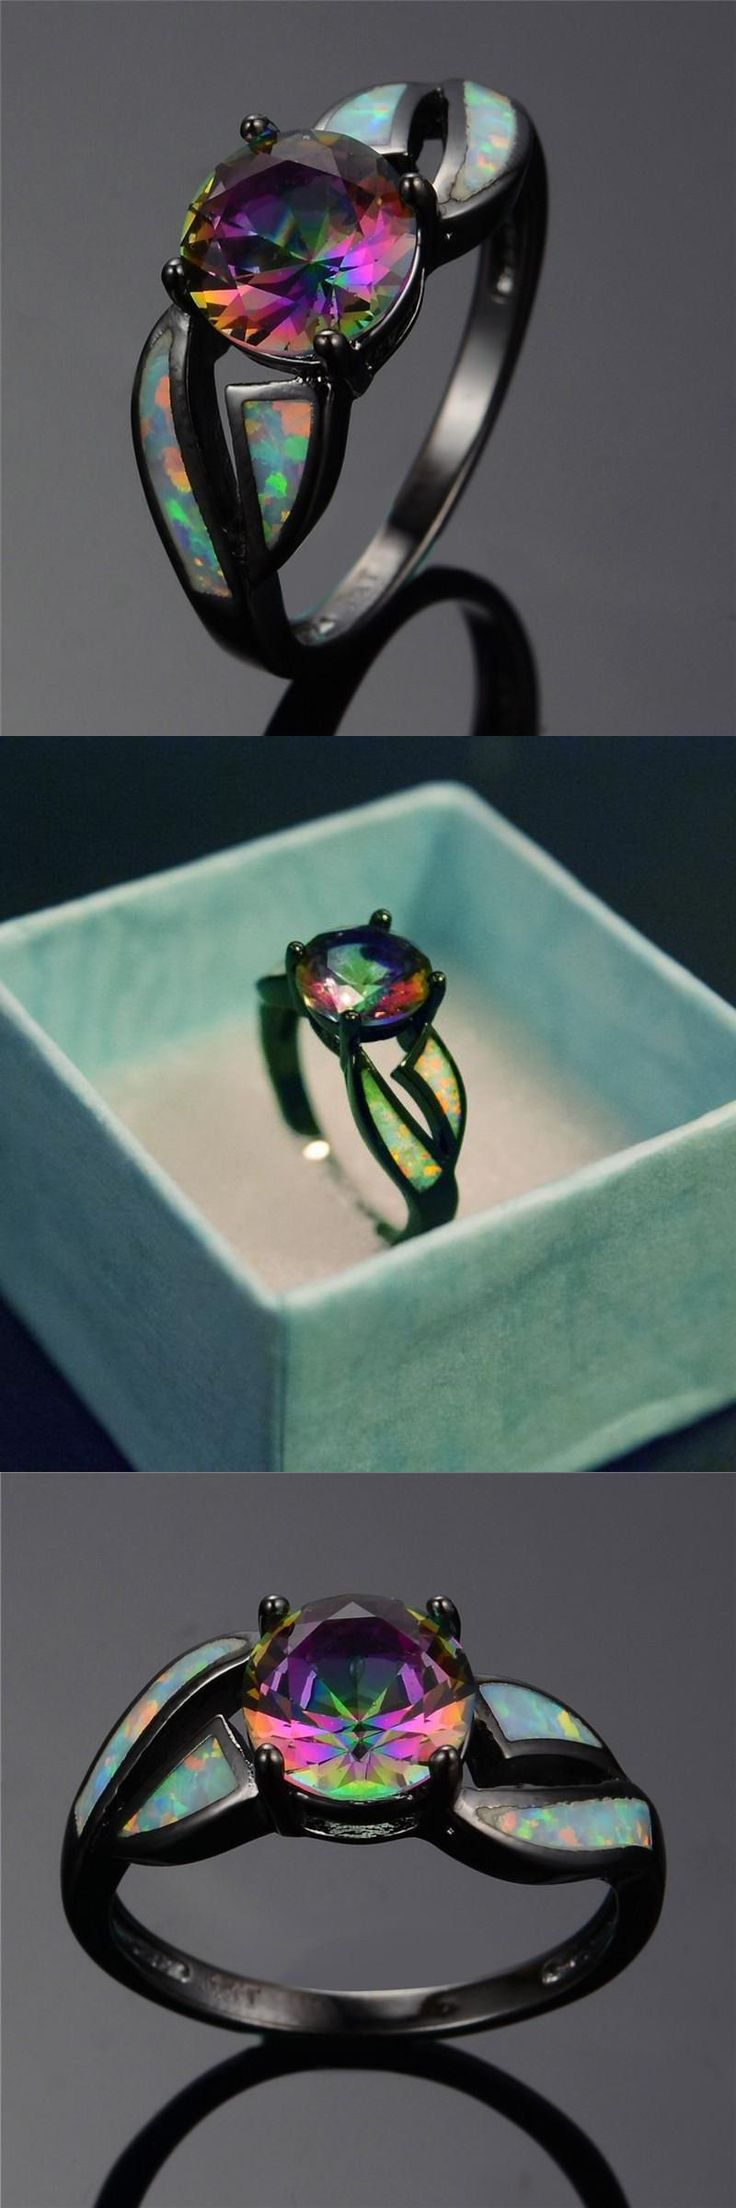 2018 Charming White Fire Opal Ring Colorful Men Women Rainbow Jewelry Black Allo... 3